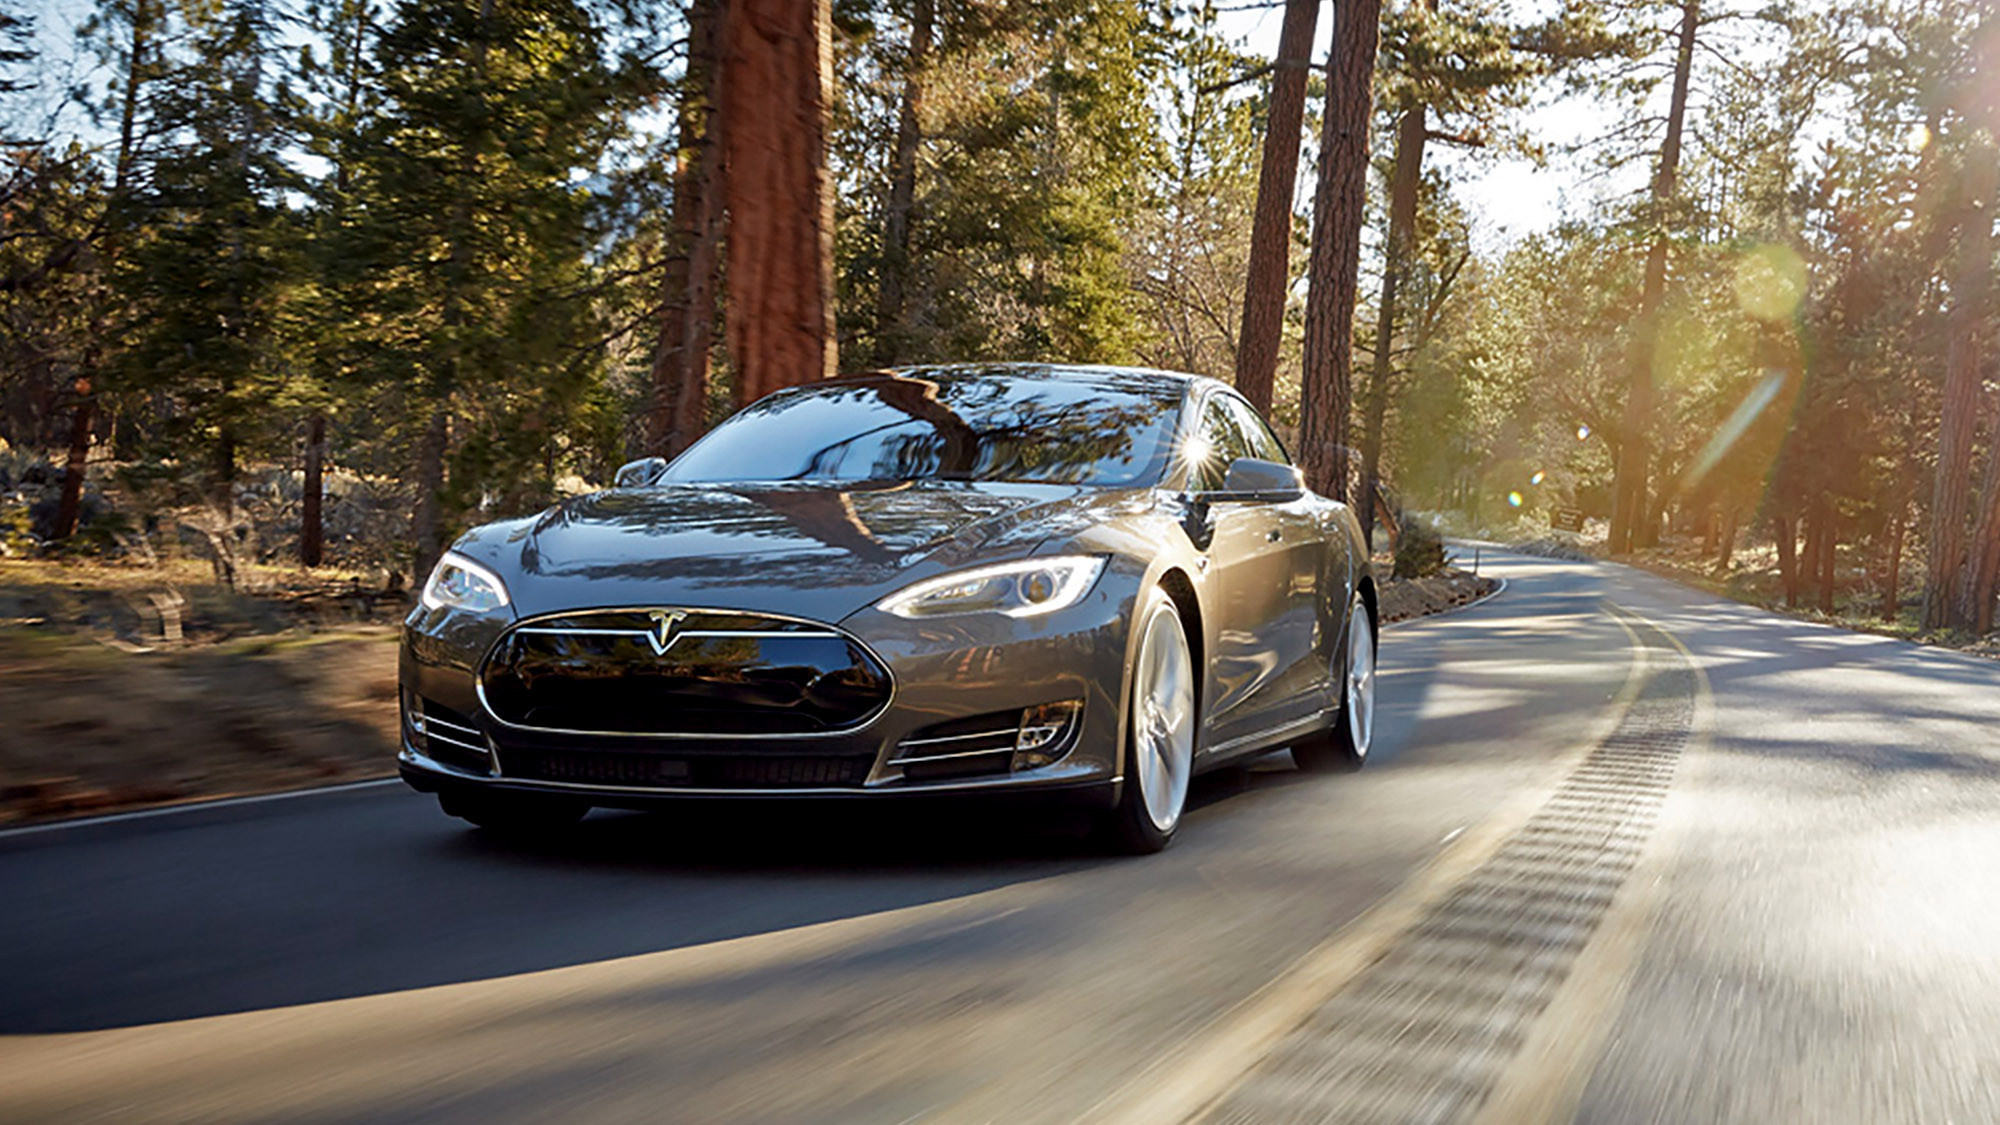 Excellent Tesla39s Autopilot Makes For A Smooth Highway Cruise  LA Times